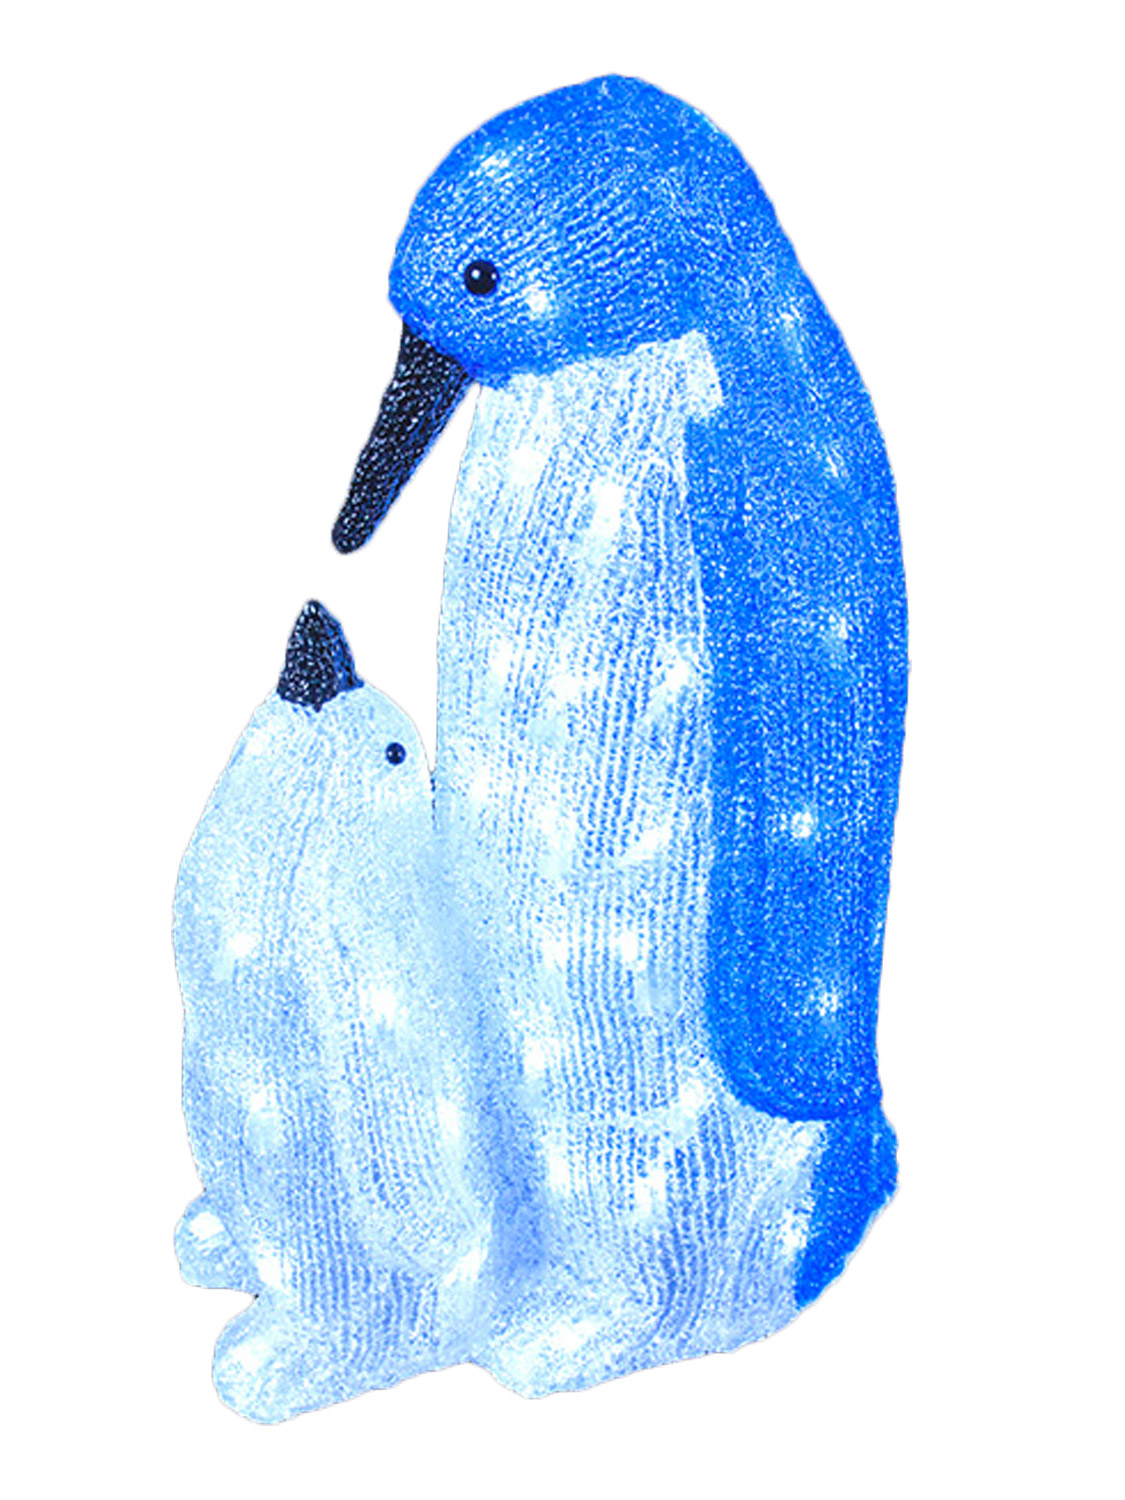 Led Acrylic Baby Penguins Christmas Light Up Indoor